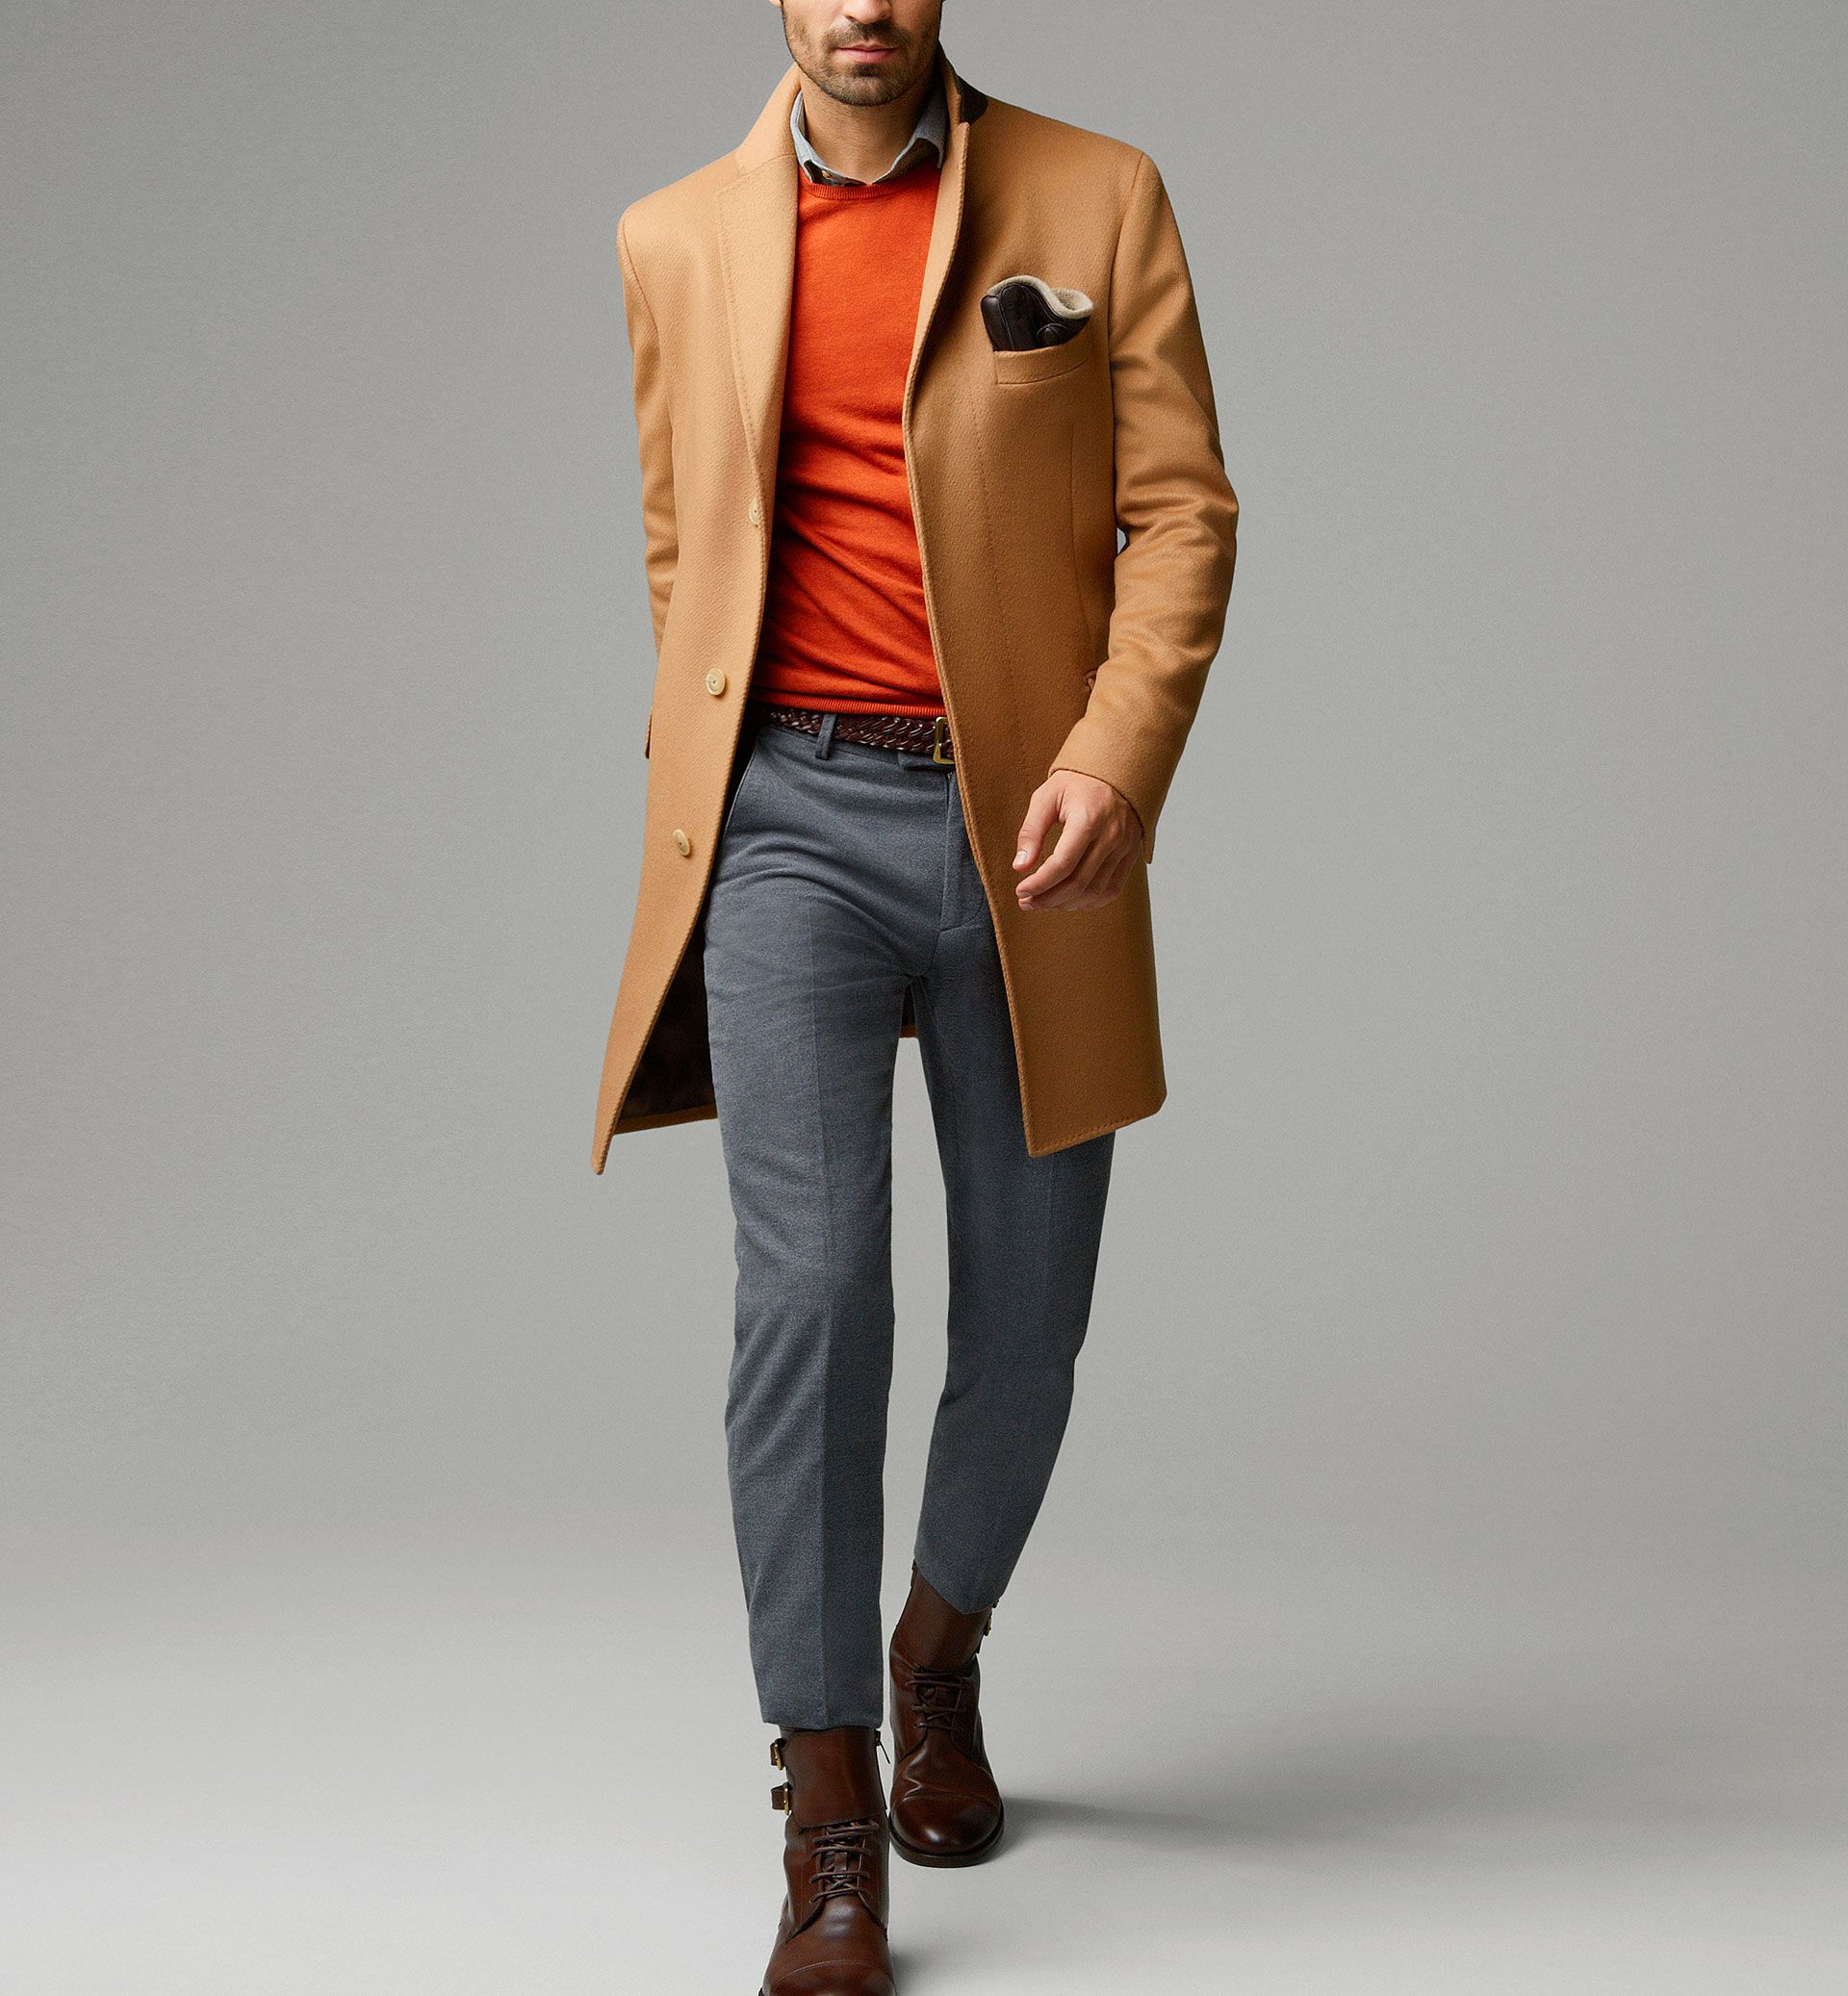 WOOL AND CASHMERE COAT | Massimo Dutti | Pinterest | Coats, Wool ...